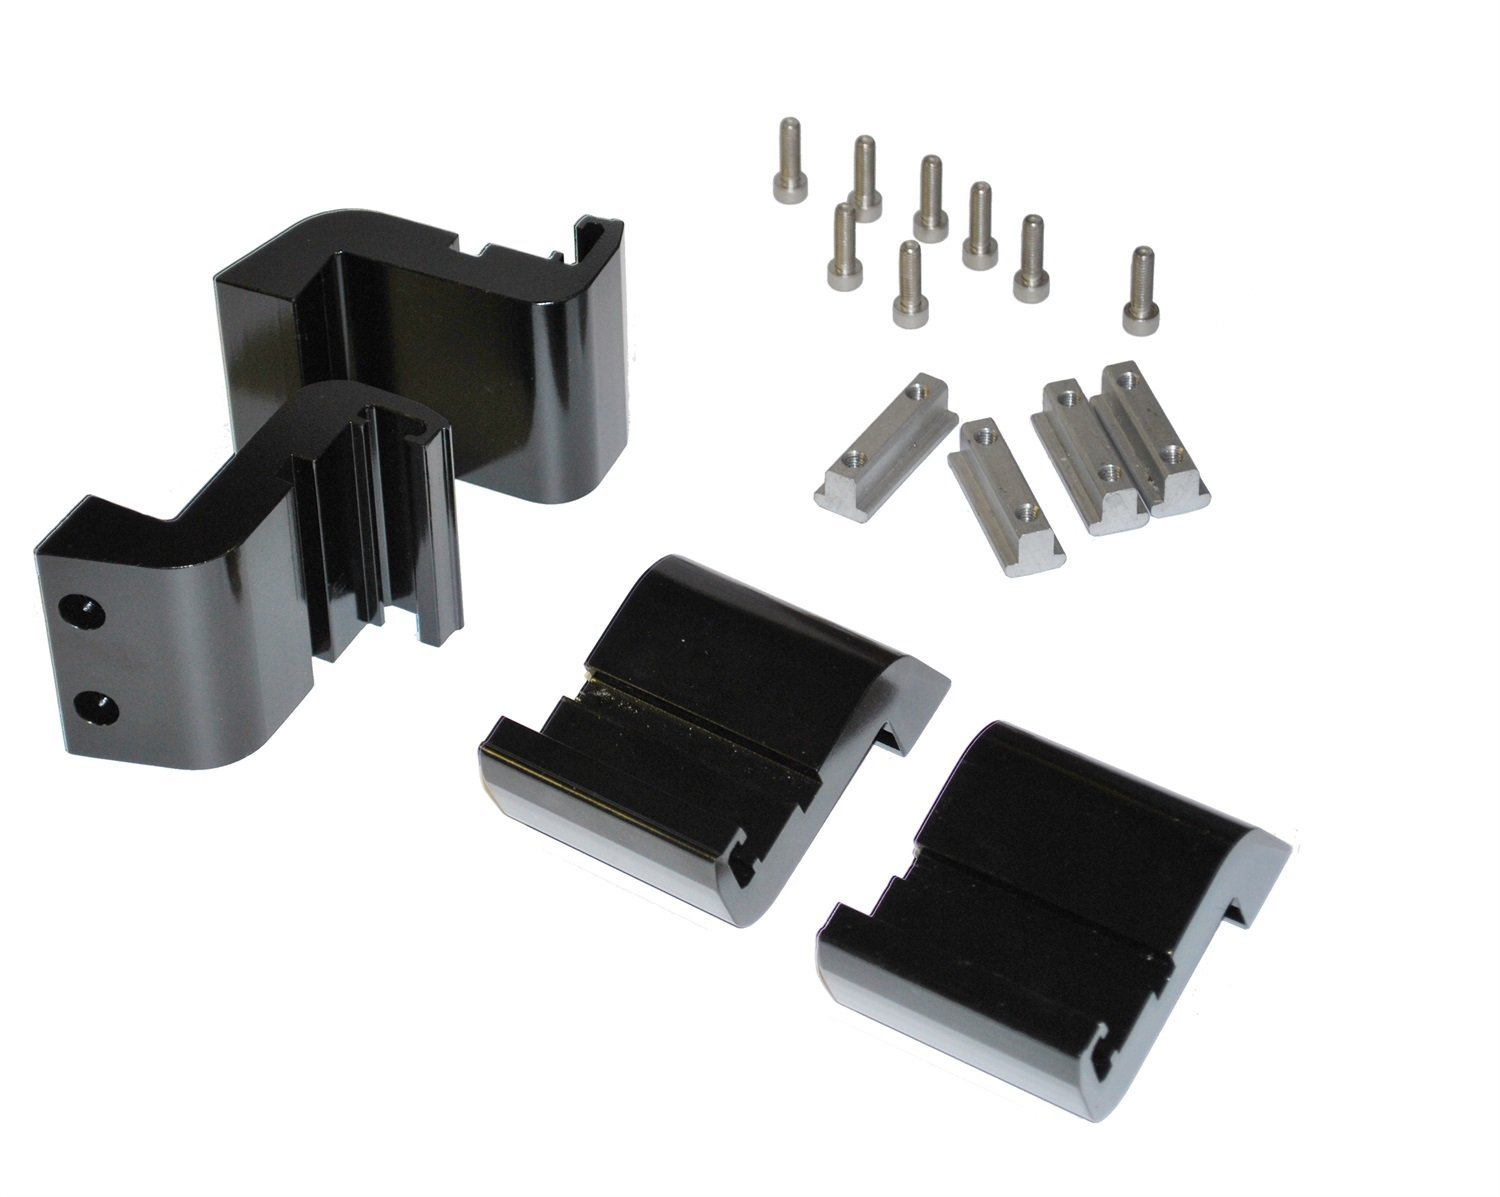 Bestop 75130-15 PowerBoard Extension Kit for All Powerboard Retractable Running Board Sets